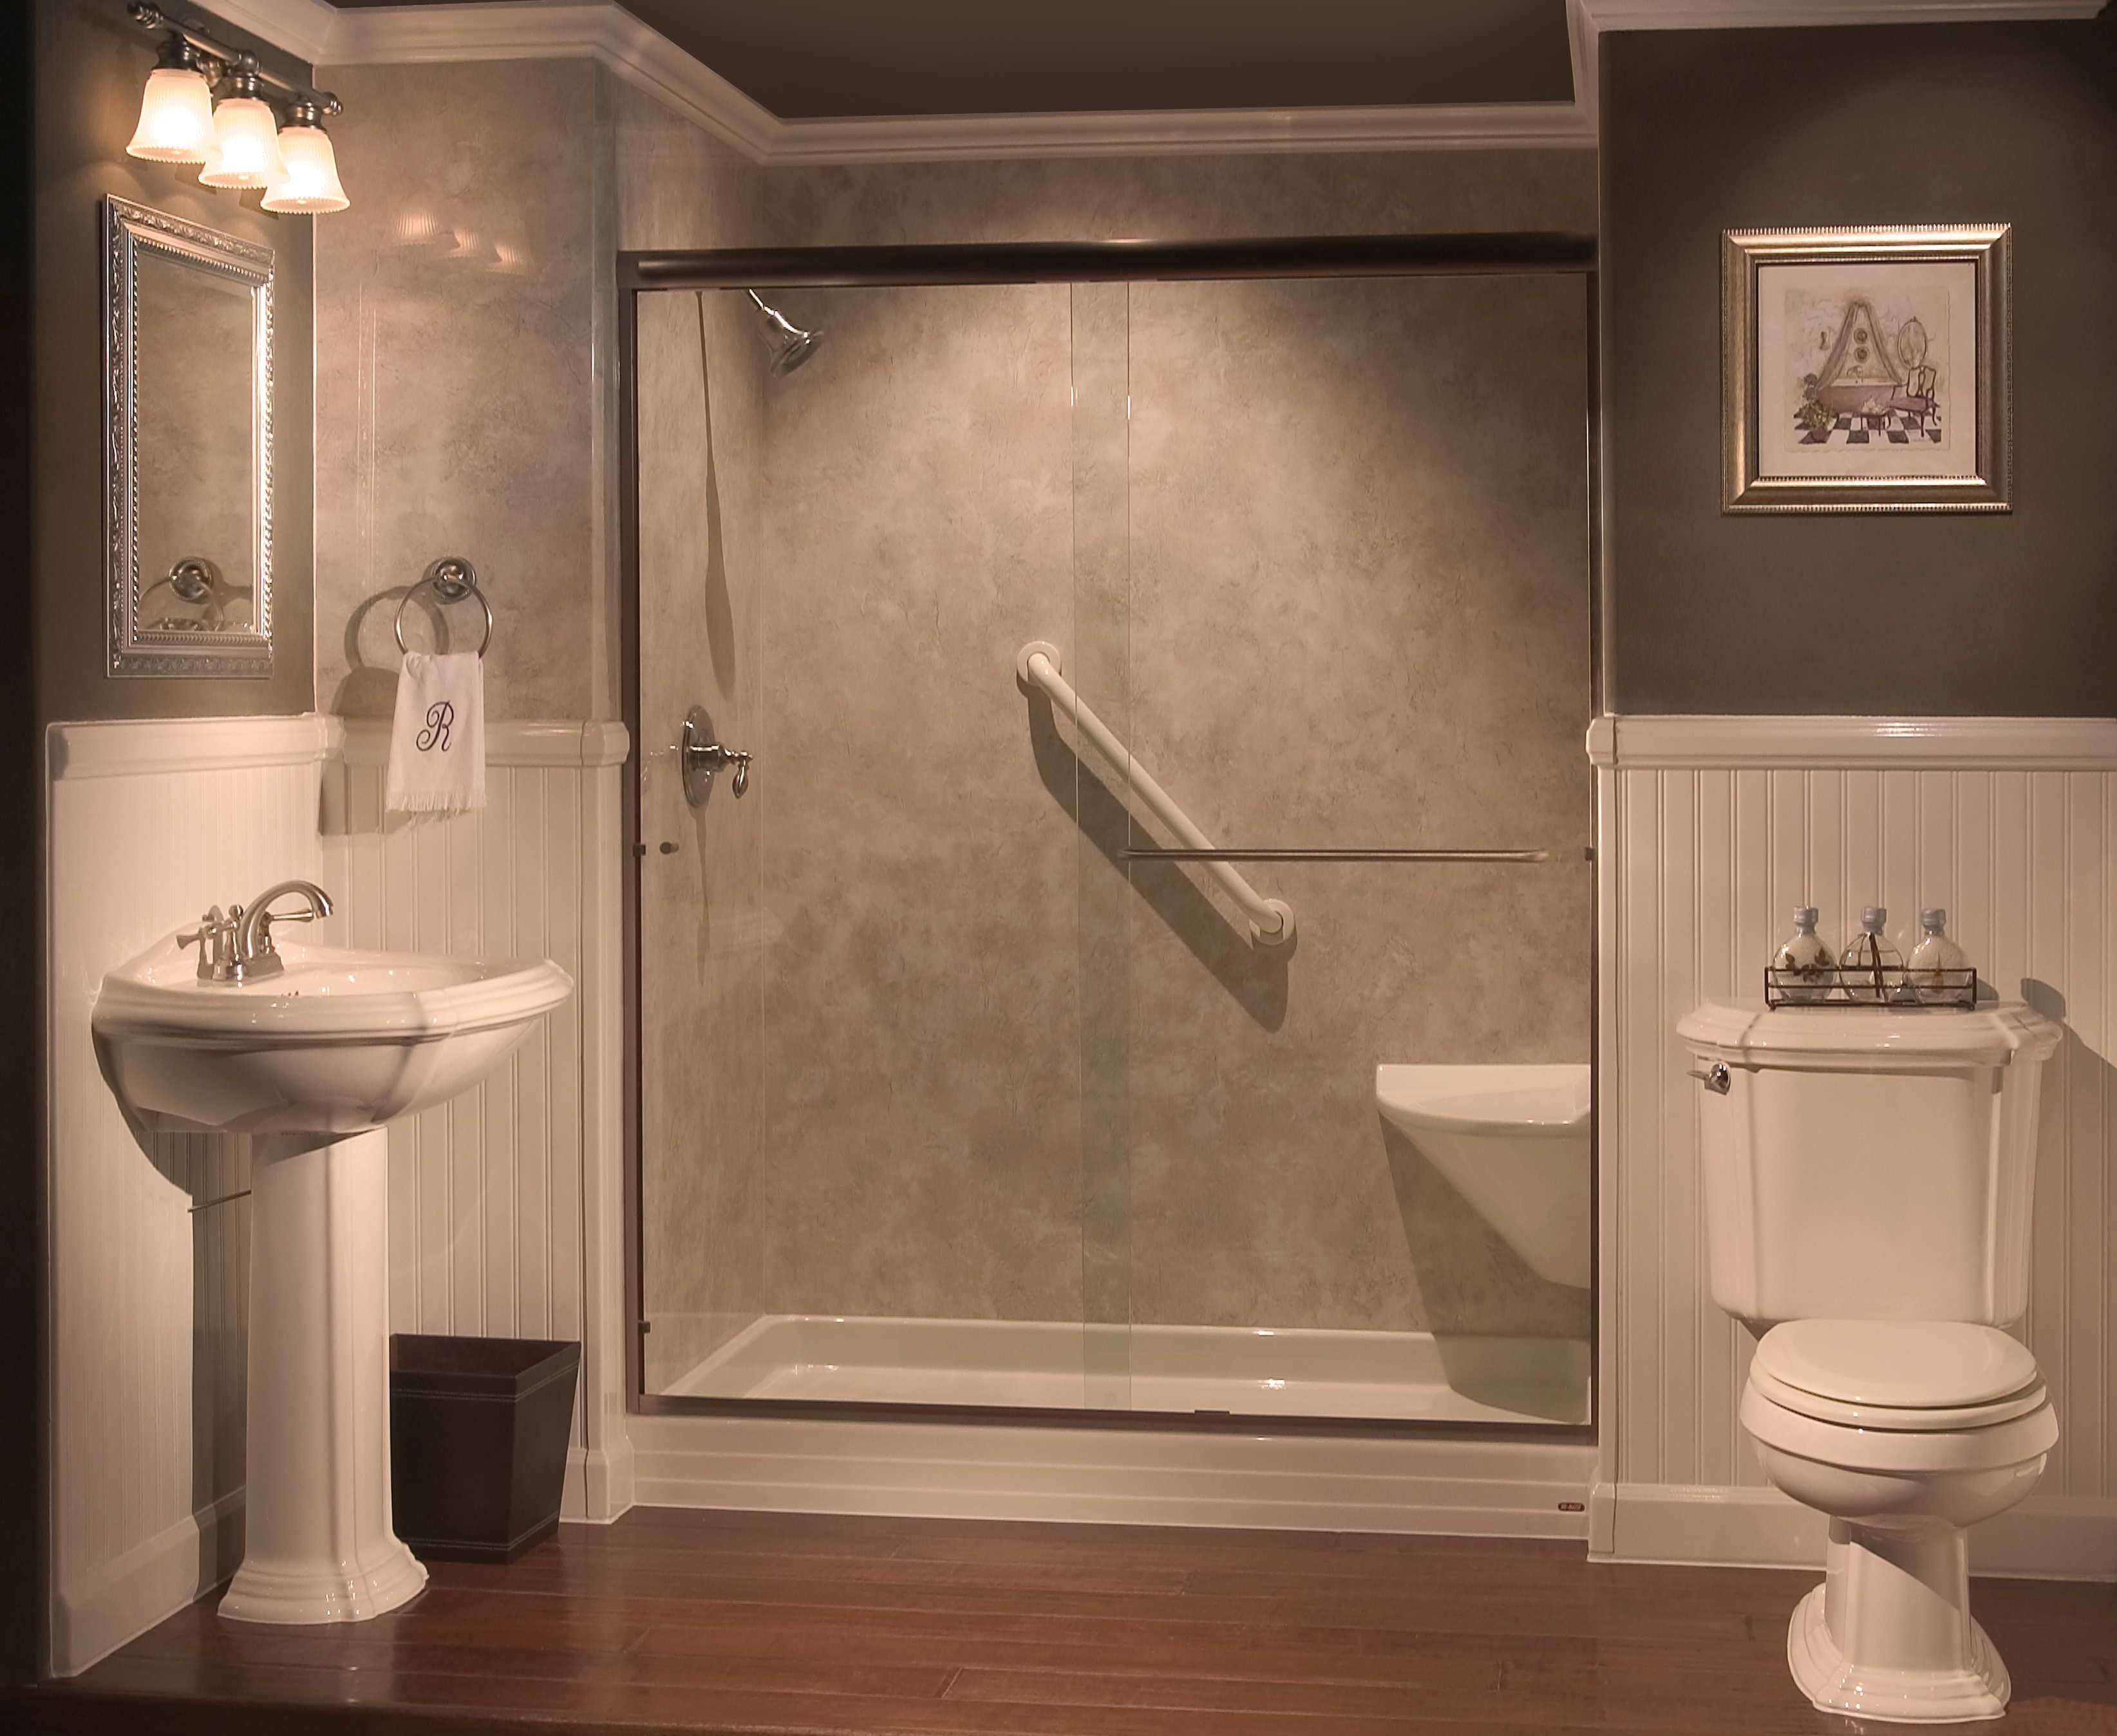 Bathtub Showers Showers With Seats Built In Tub To Shower Conversions